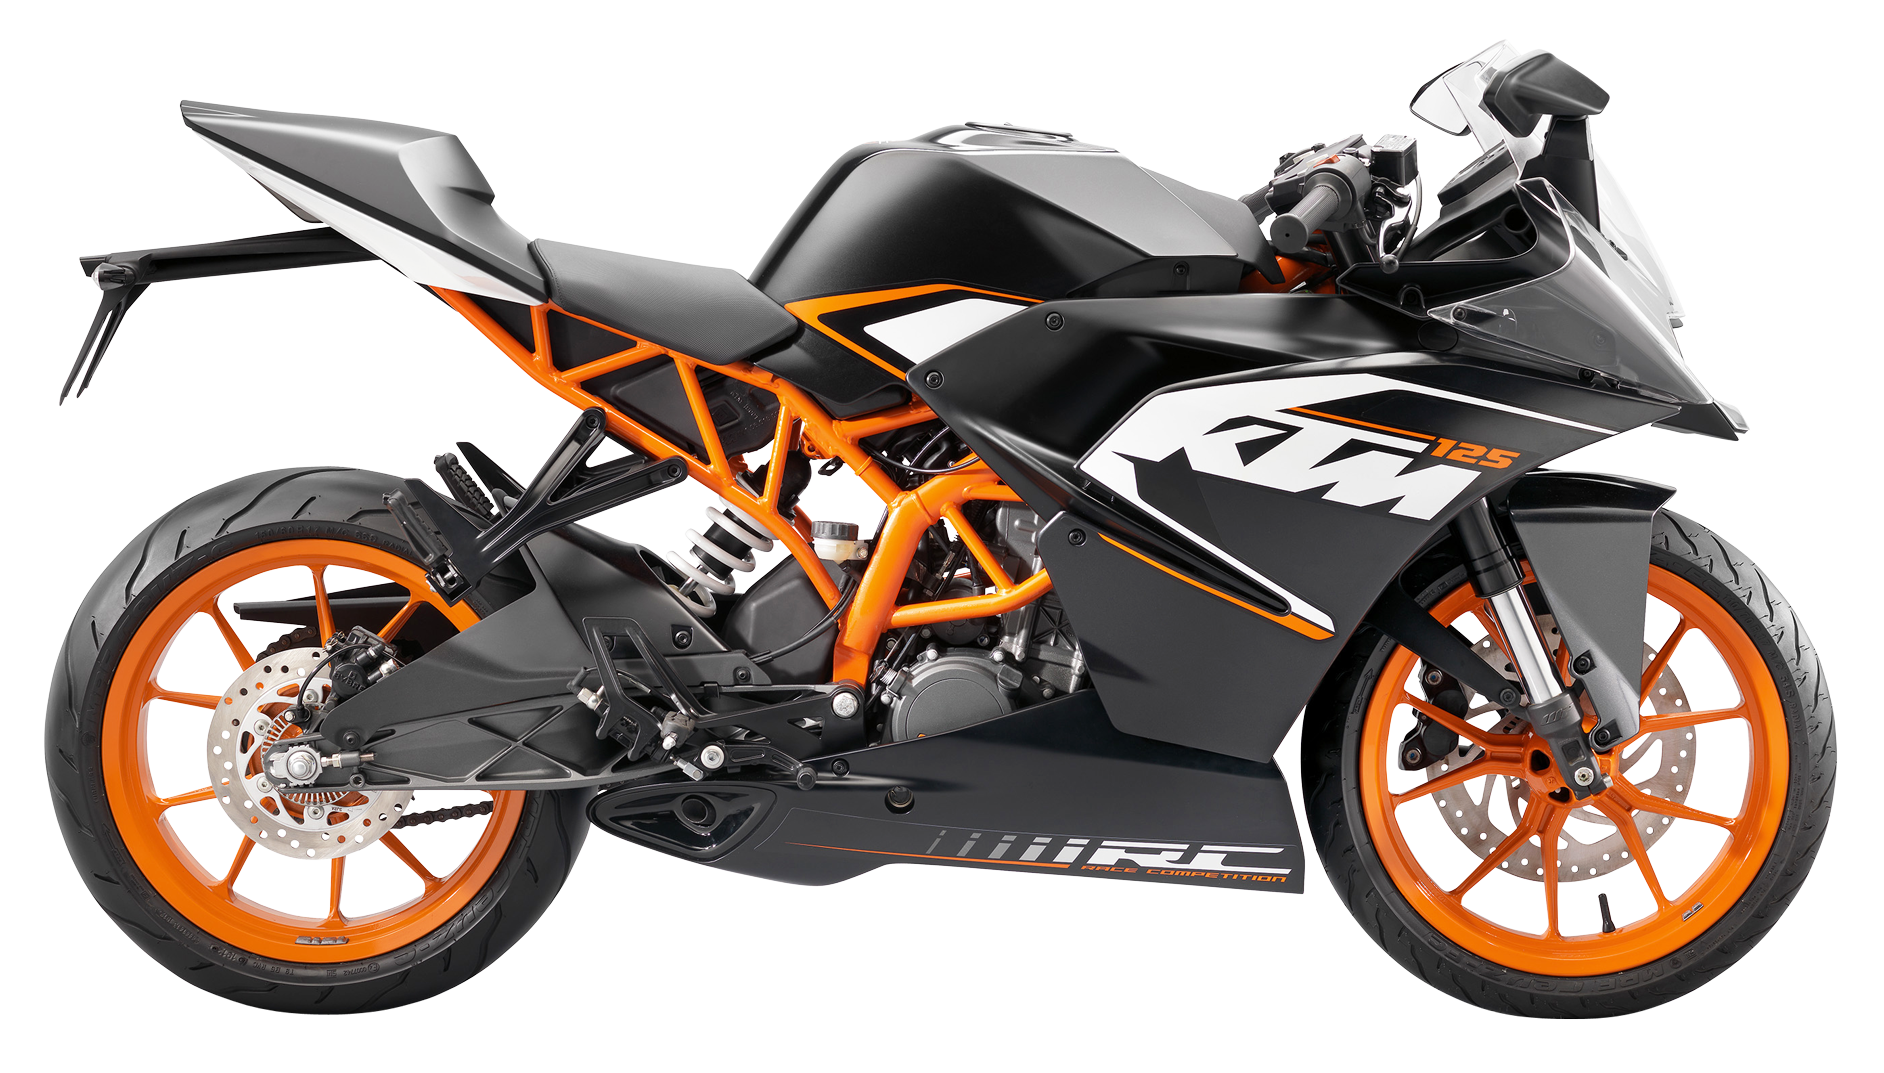 Motorcycle clipart superbike. Ktm rc bike png